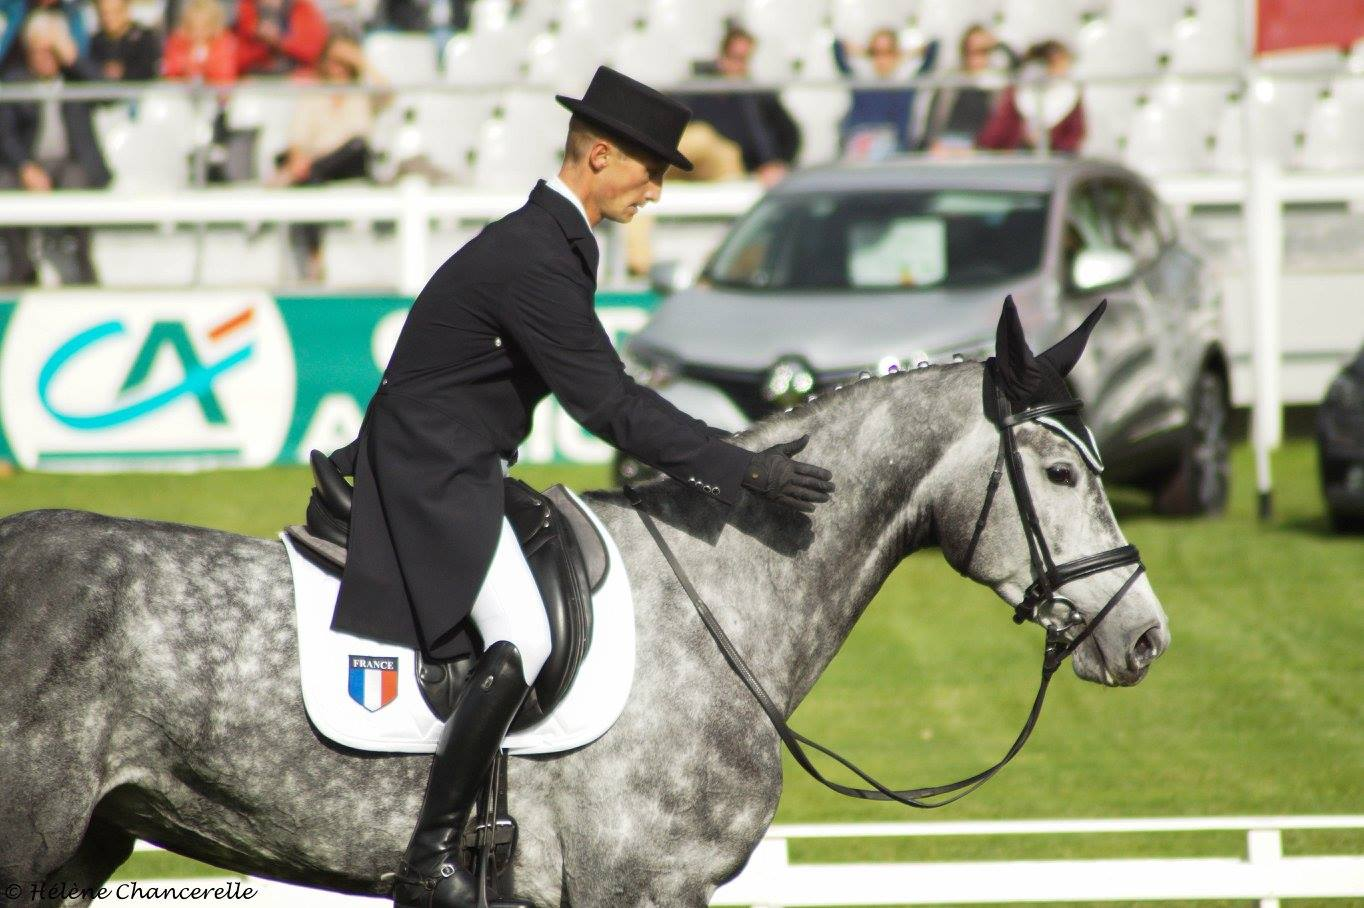 écurie-christopher-six-vanity-fair-cavalier-concours-complet-international-membre-equipe-de-france-pension-box-paddock-valorisation-coaching-gazeran-78 (5)